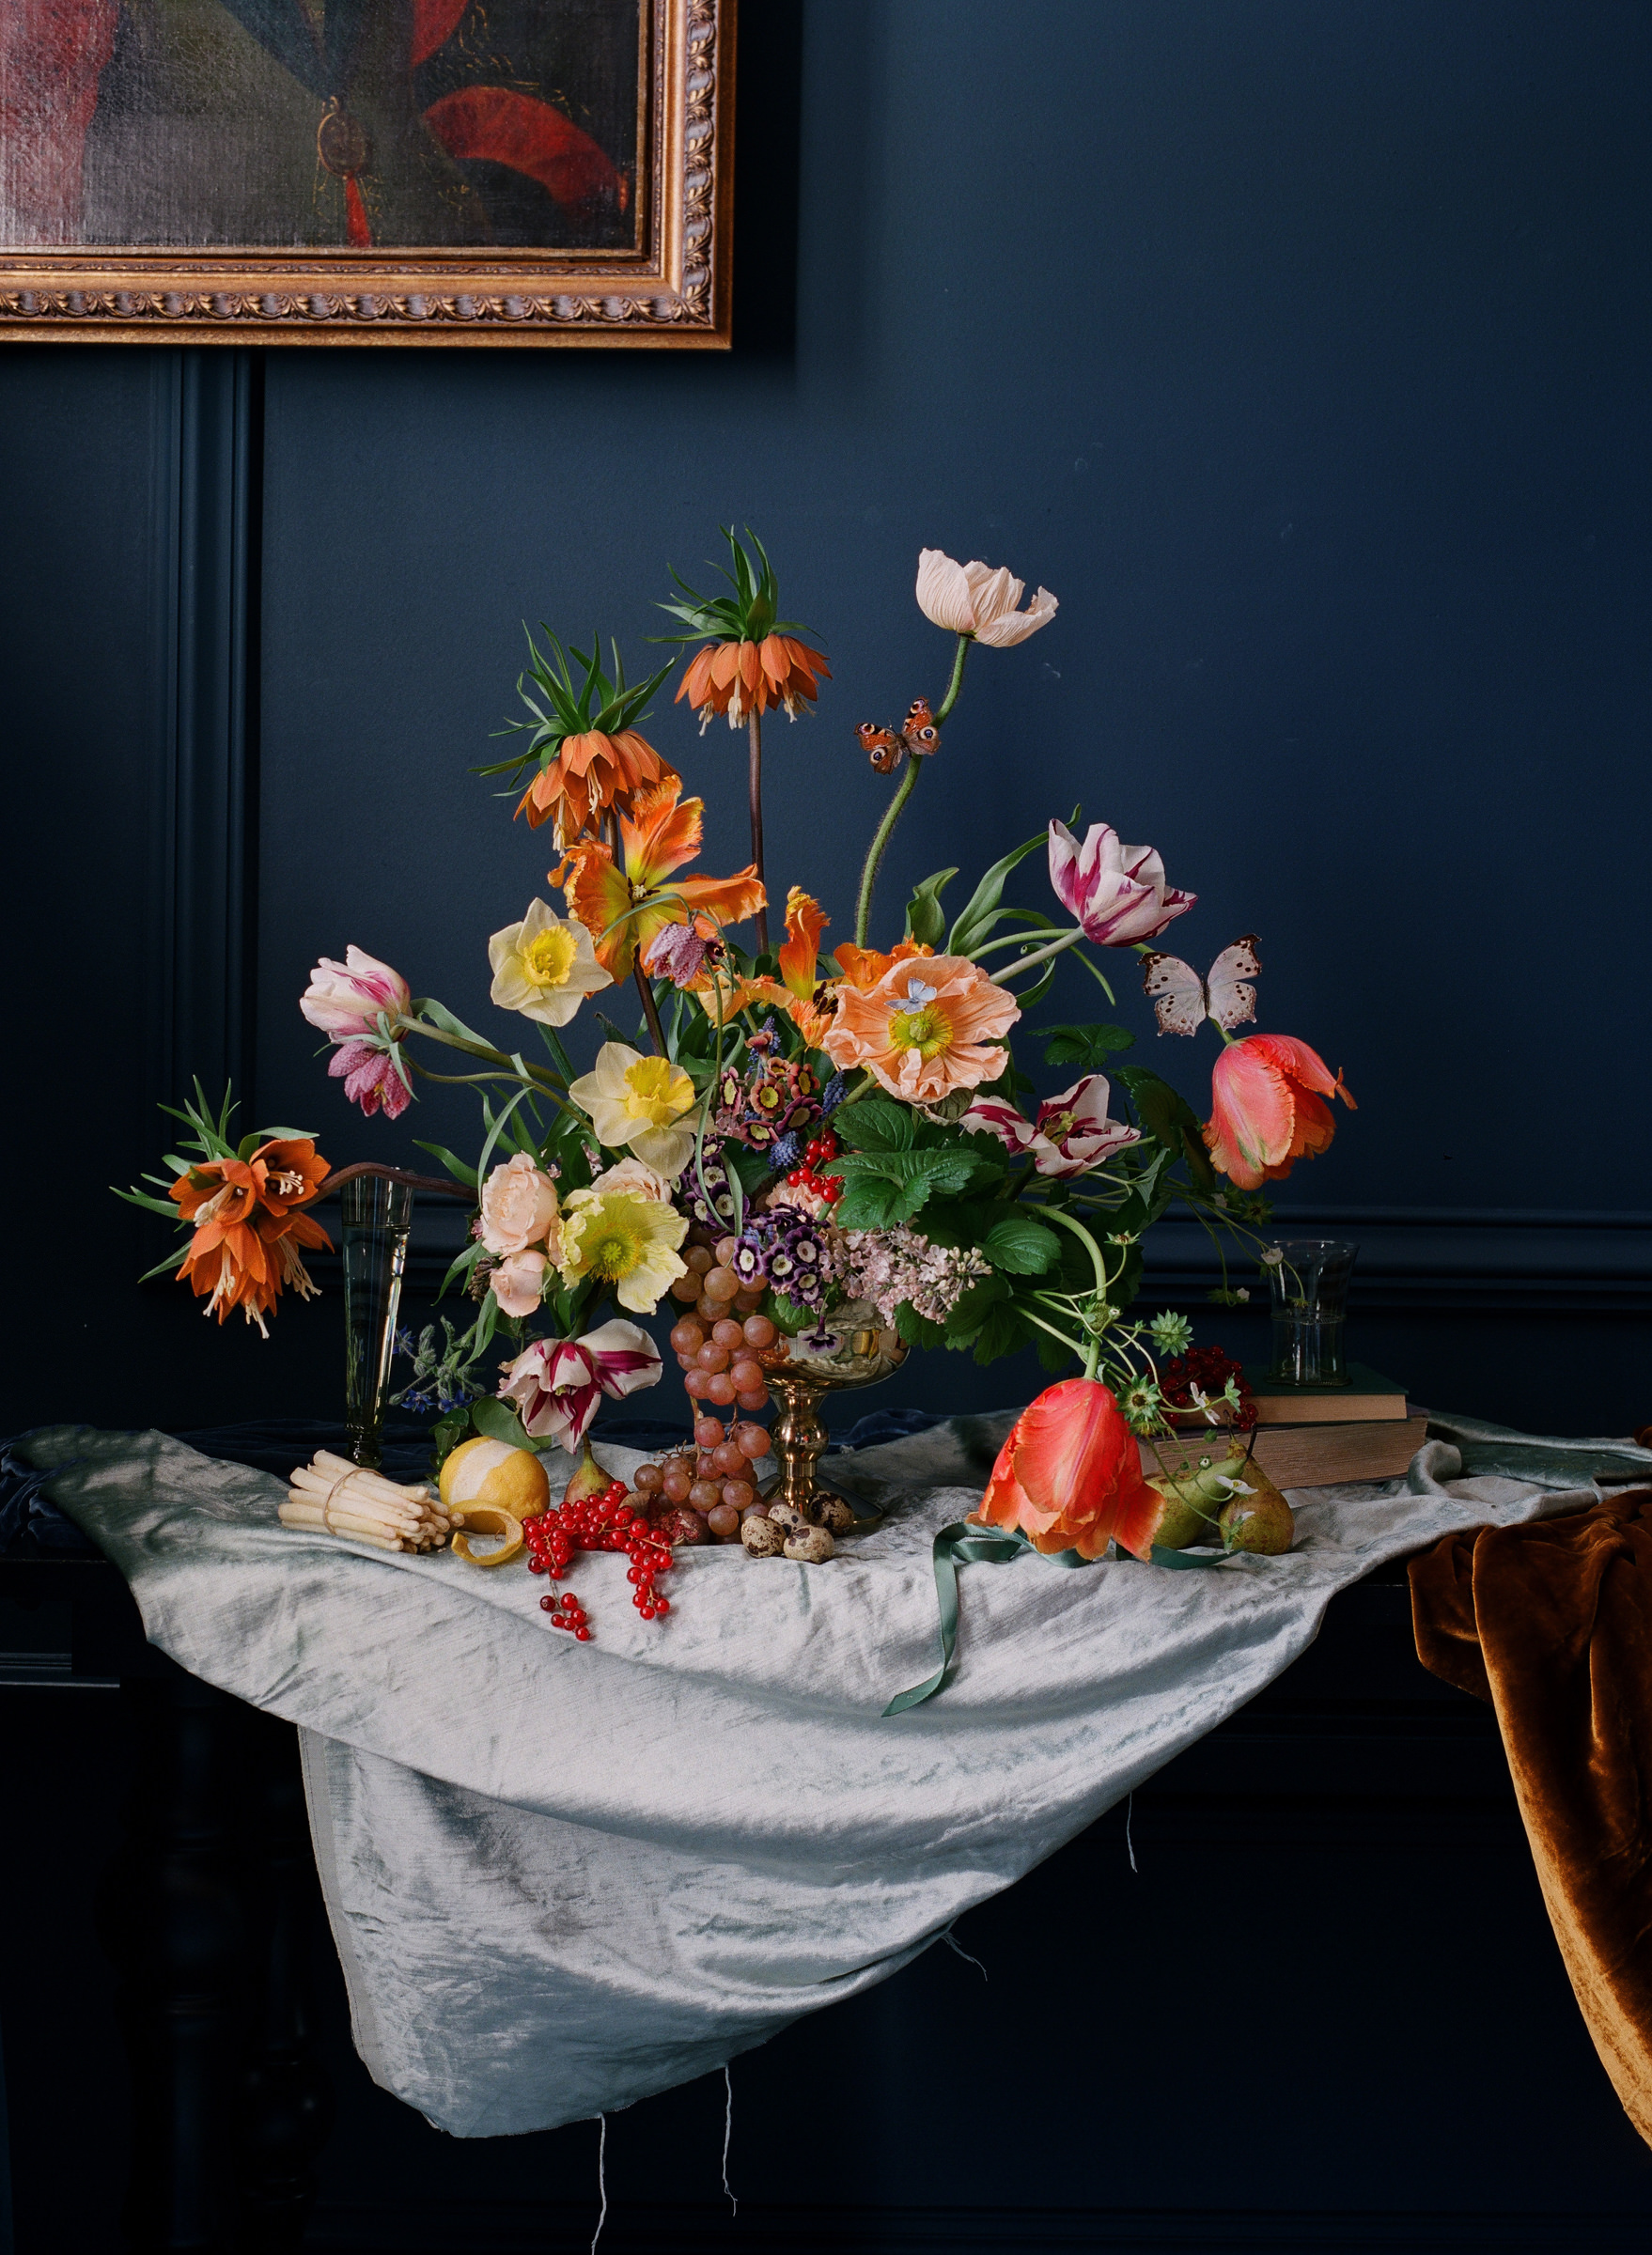 Dutch masters inspired bouquet of poppies, tulips, and daffodils - photo by Corbin Gurkin